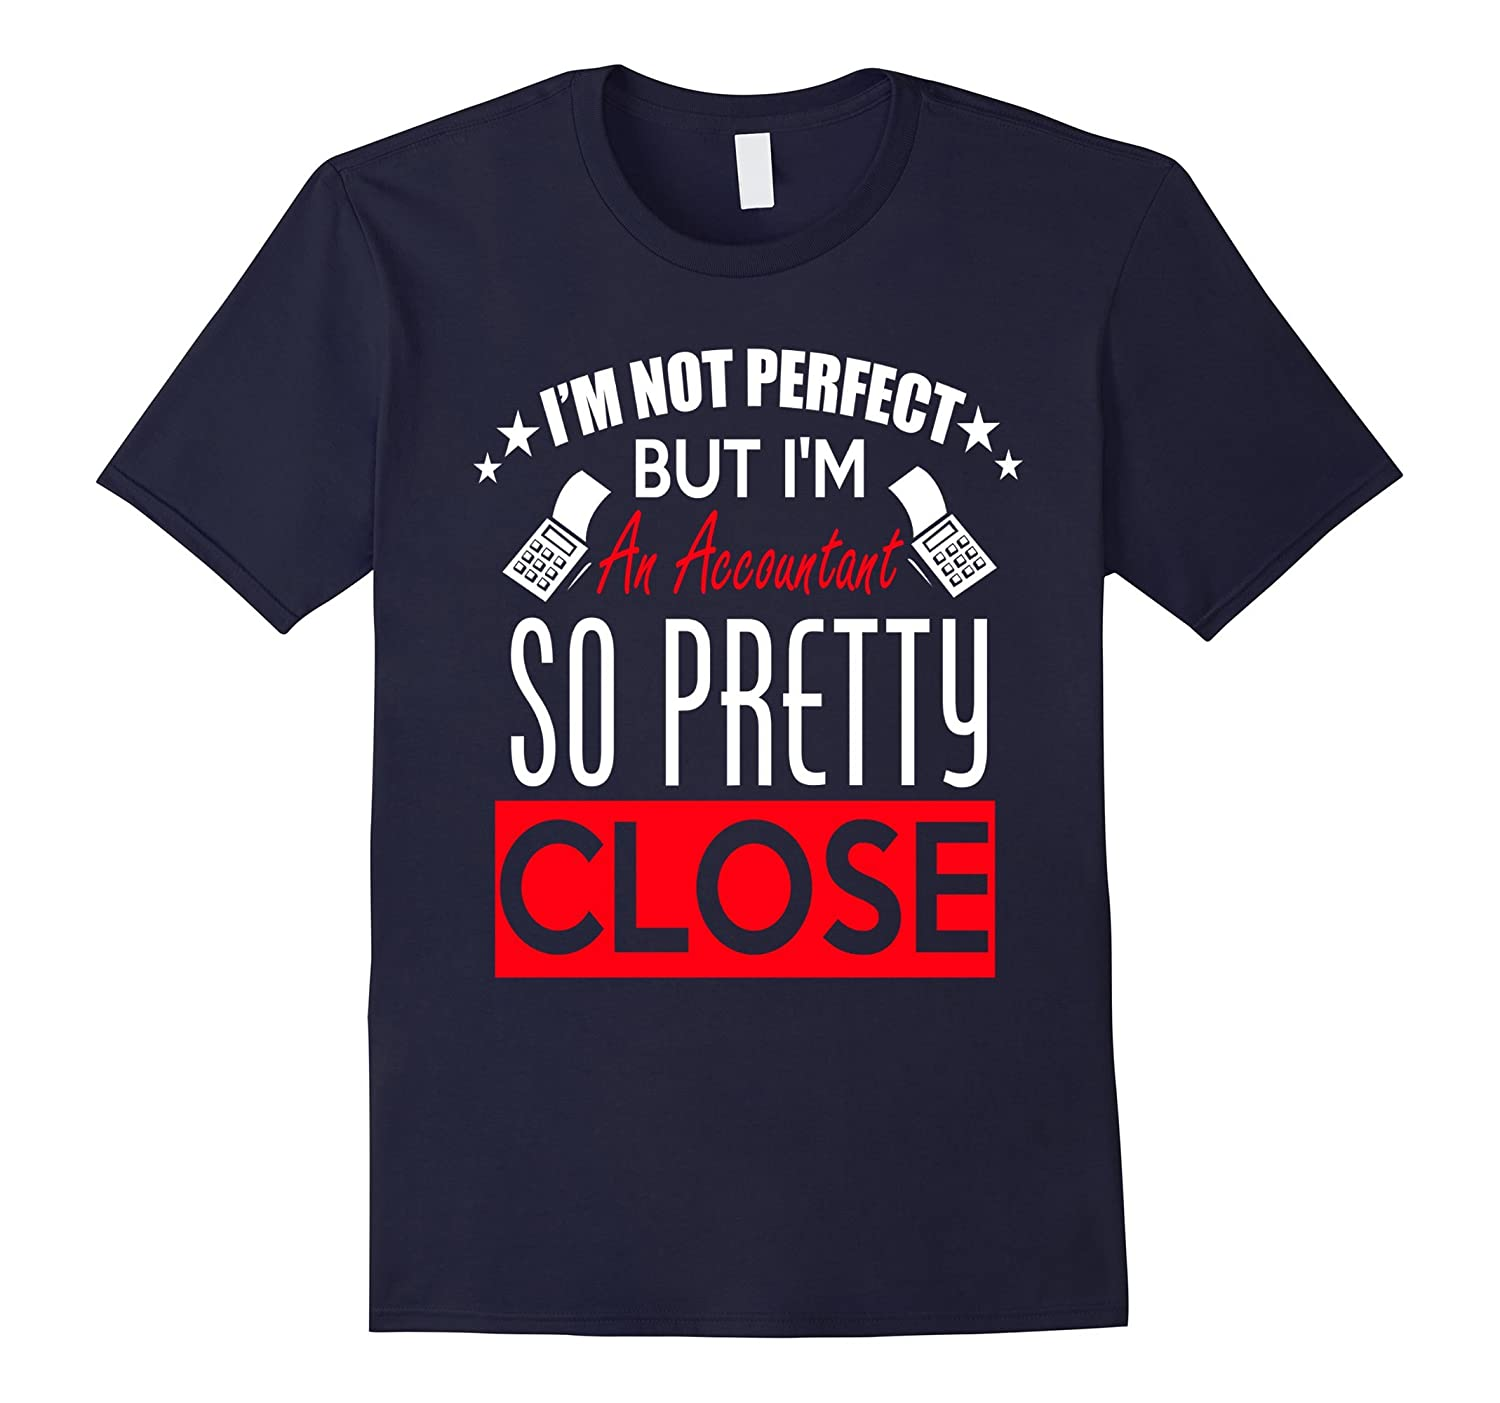 Accountant - Not Perfect But Pretty Close - Funny shirt-TJ